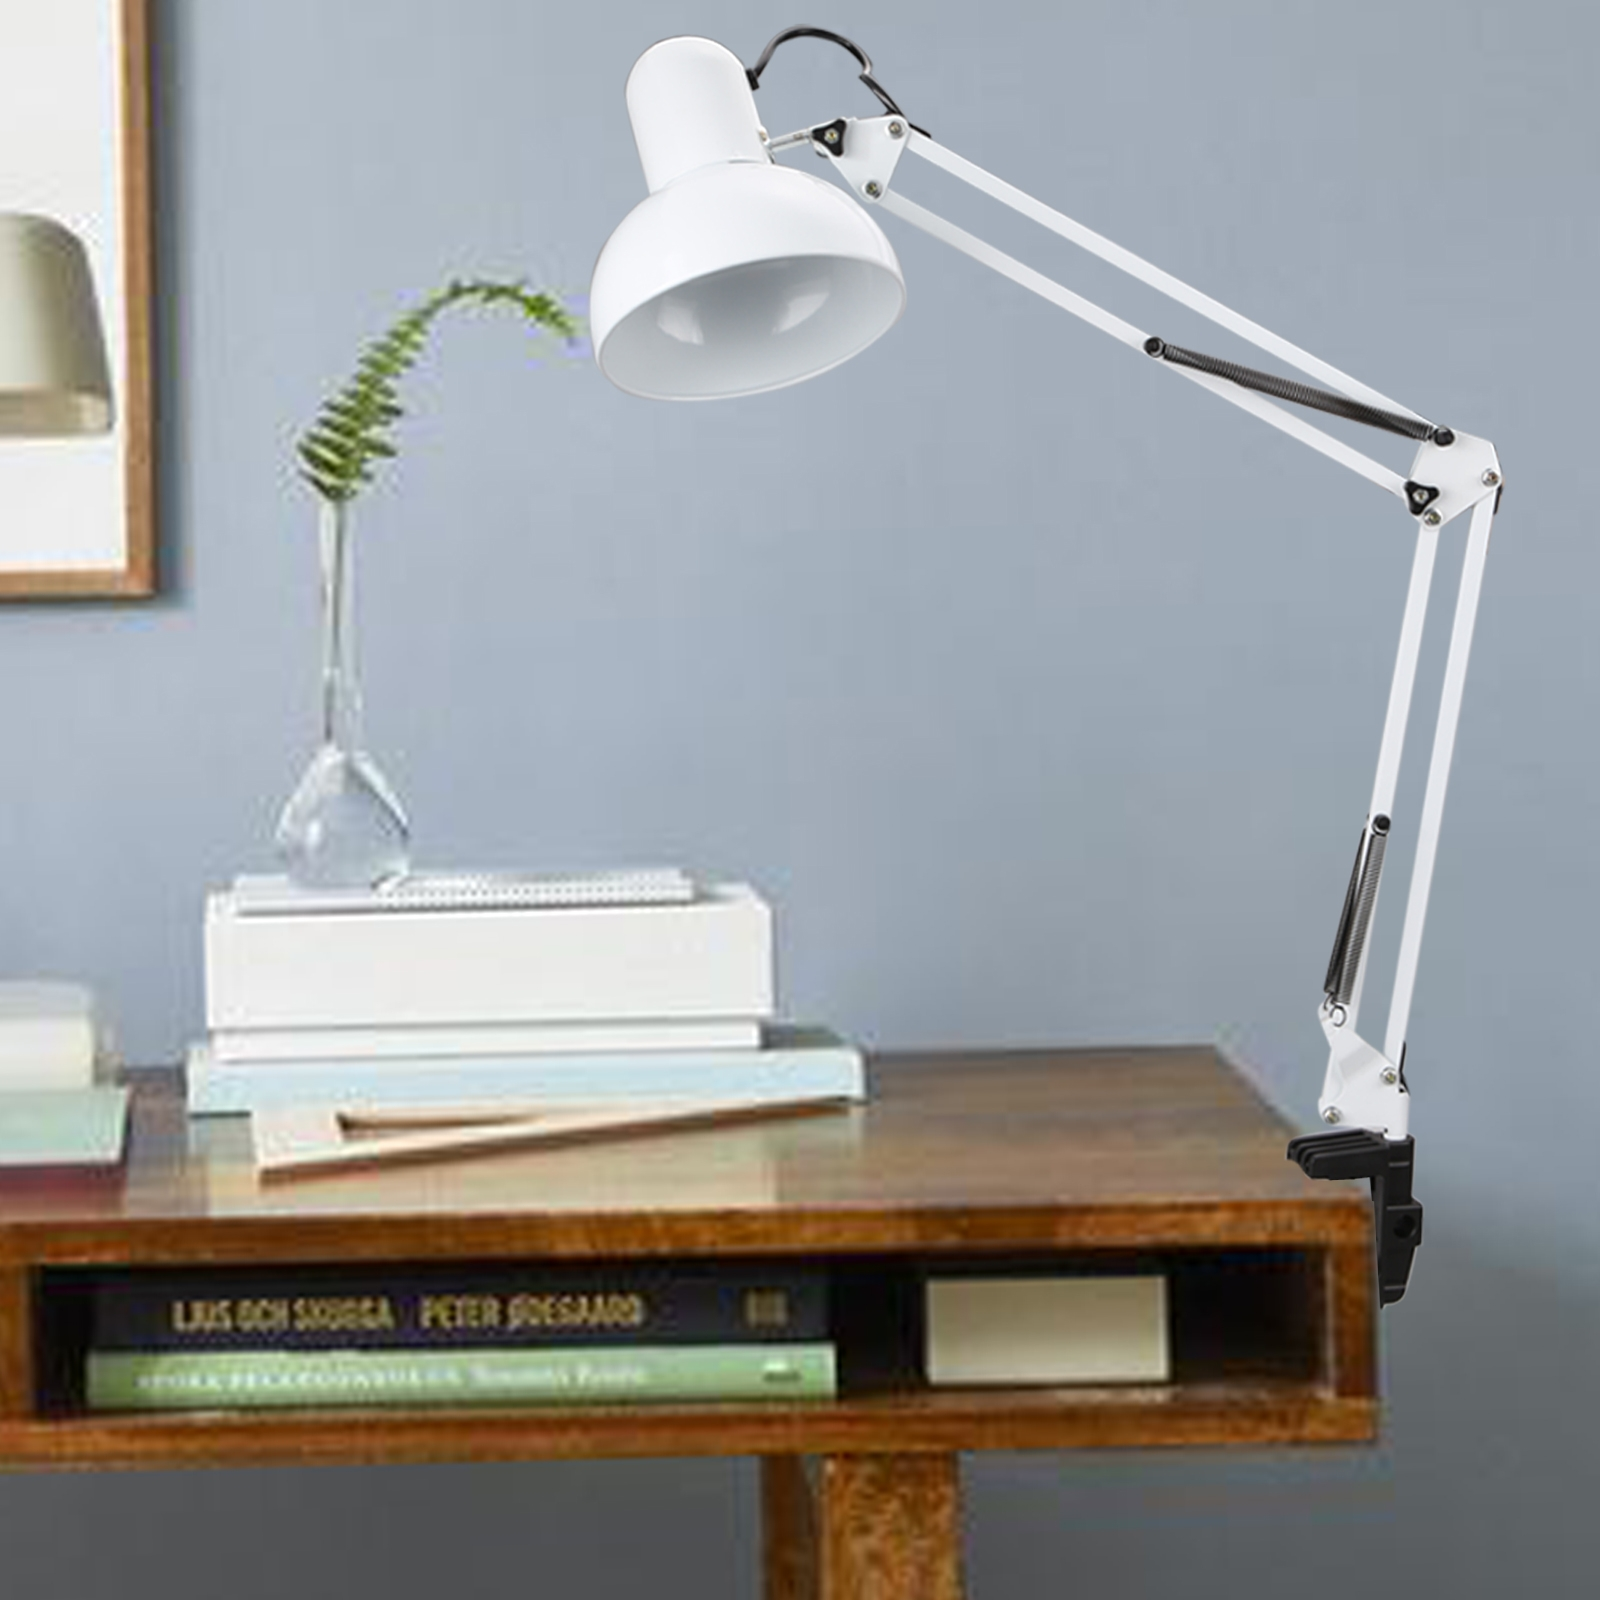 Homdox Adjustable Eyes Care Clamp Table Desk Lamp Light Swing Arm Lamp